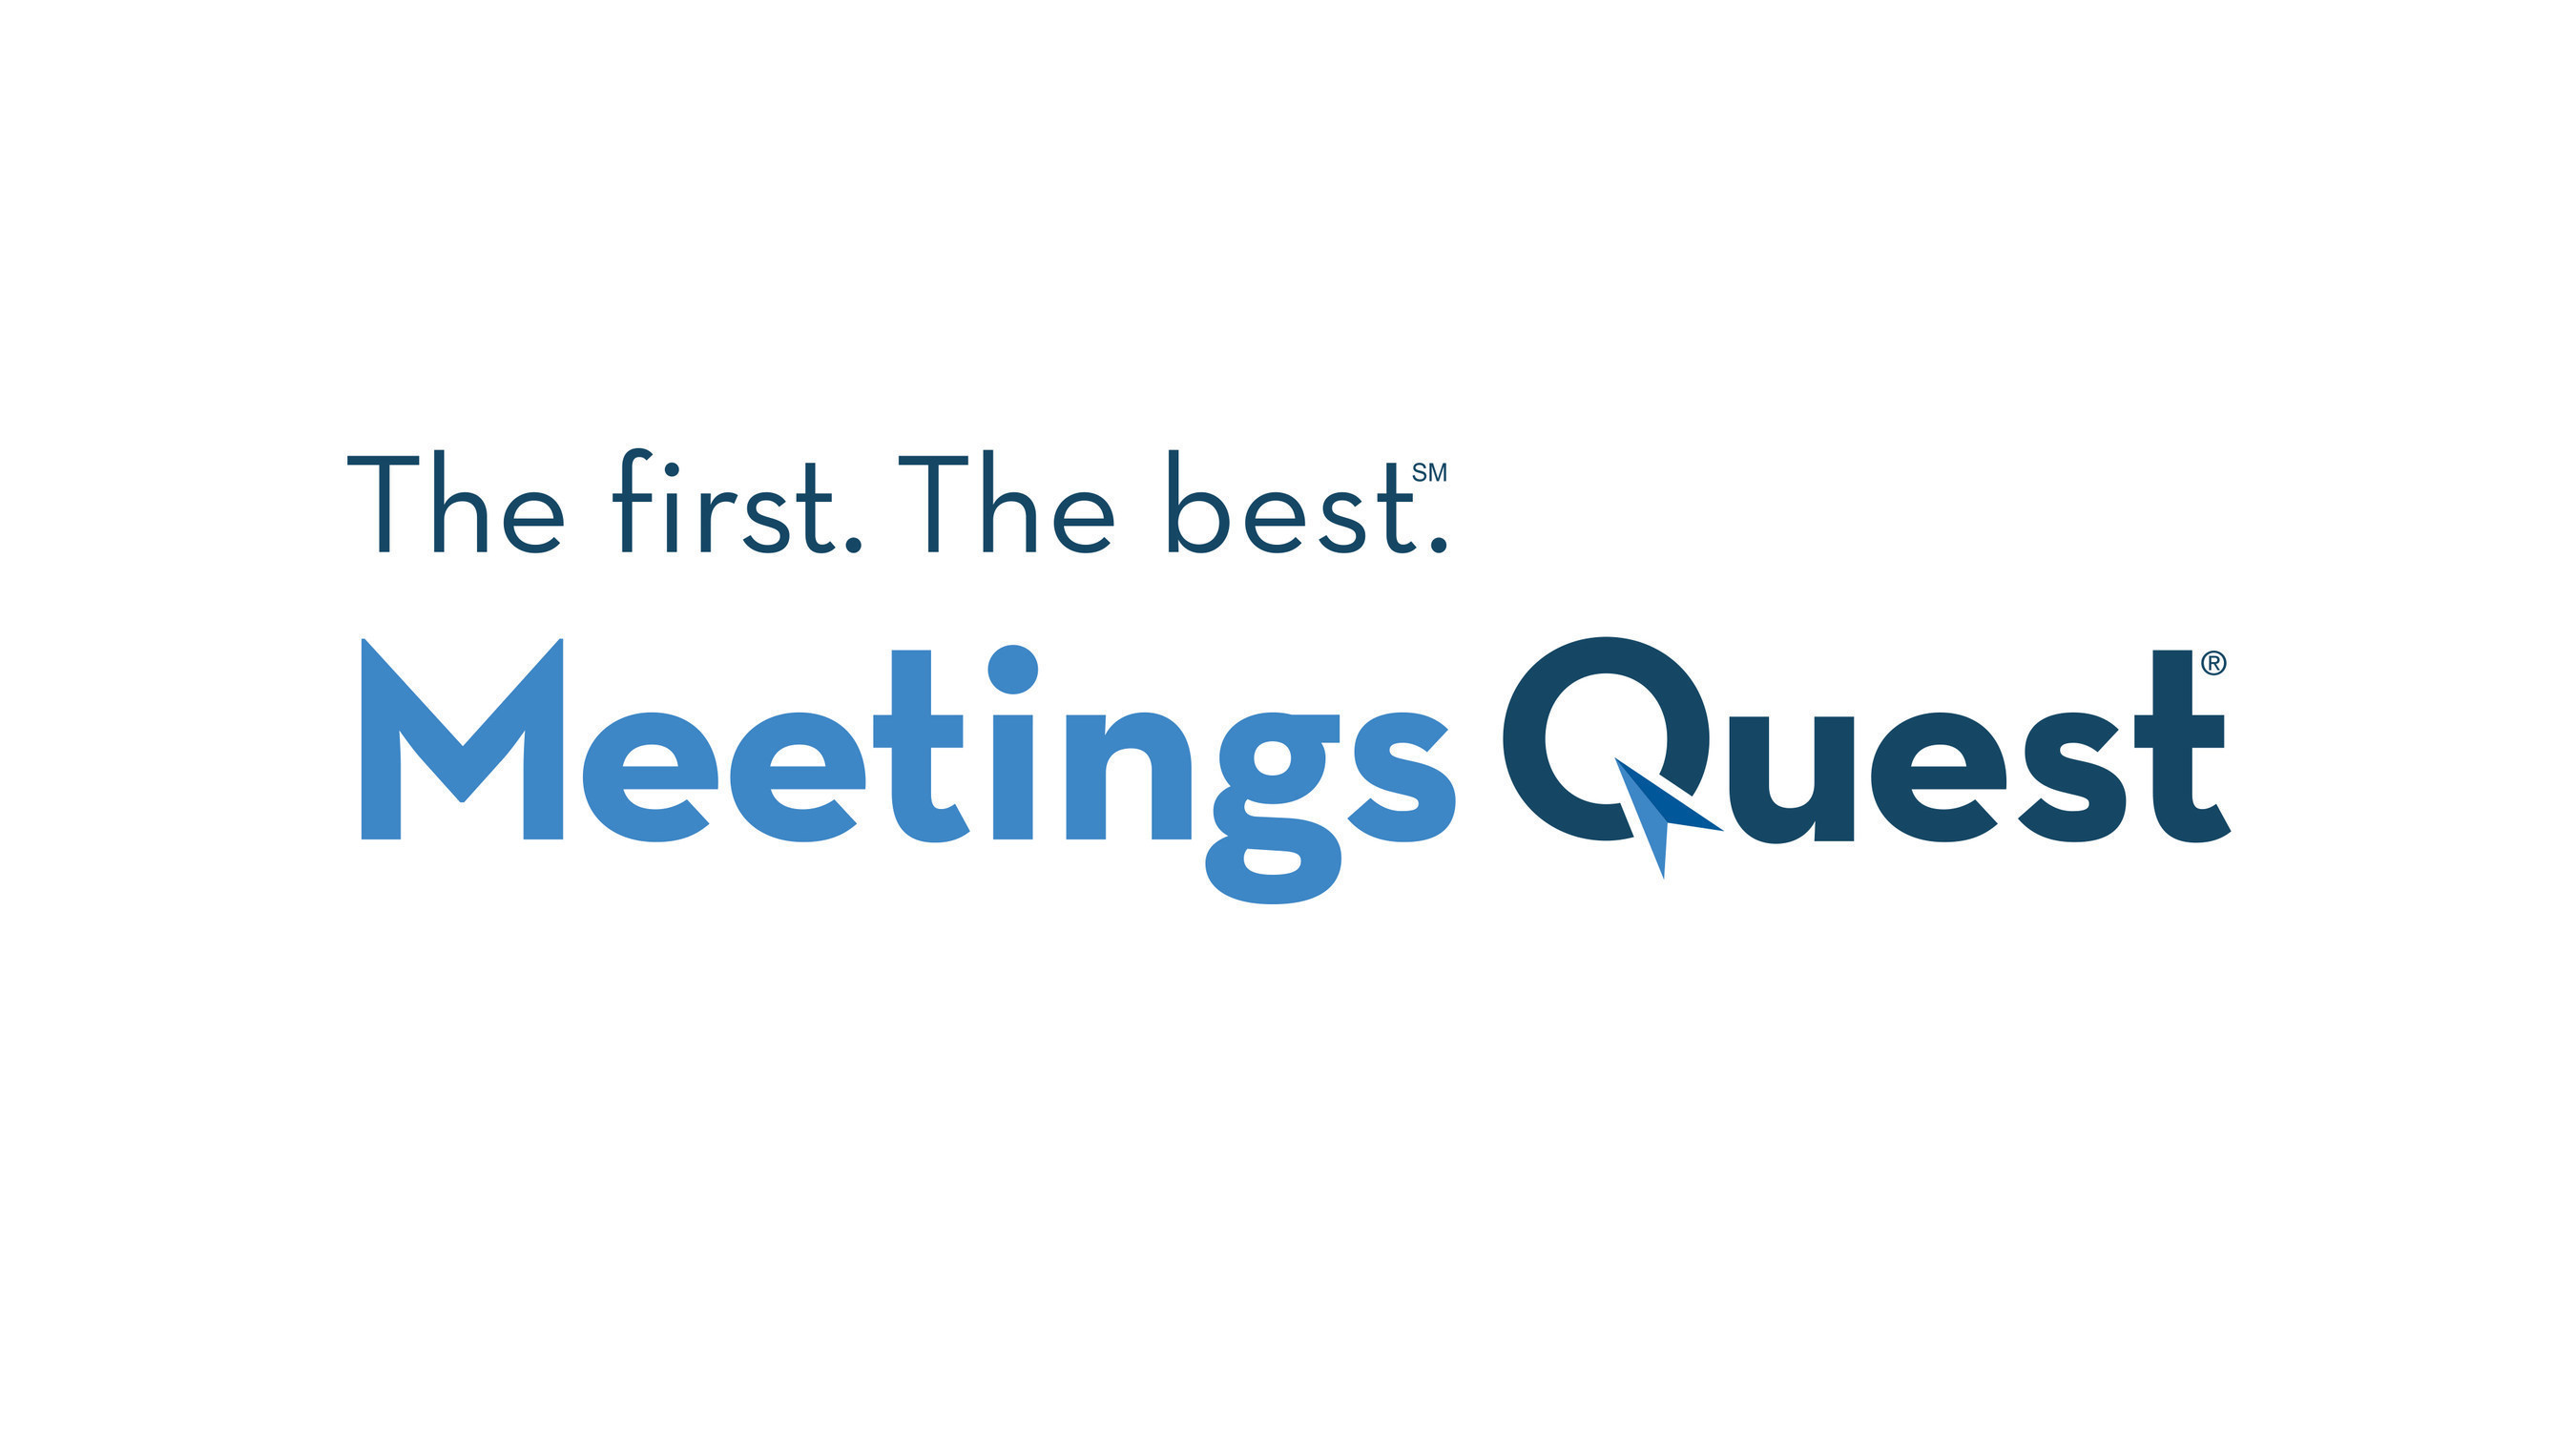 Meetings Quest Programming To Focus On Growing An Organization And